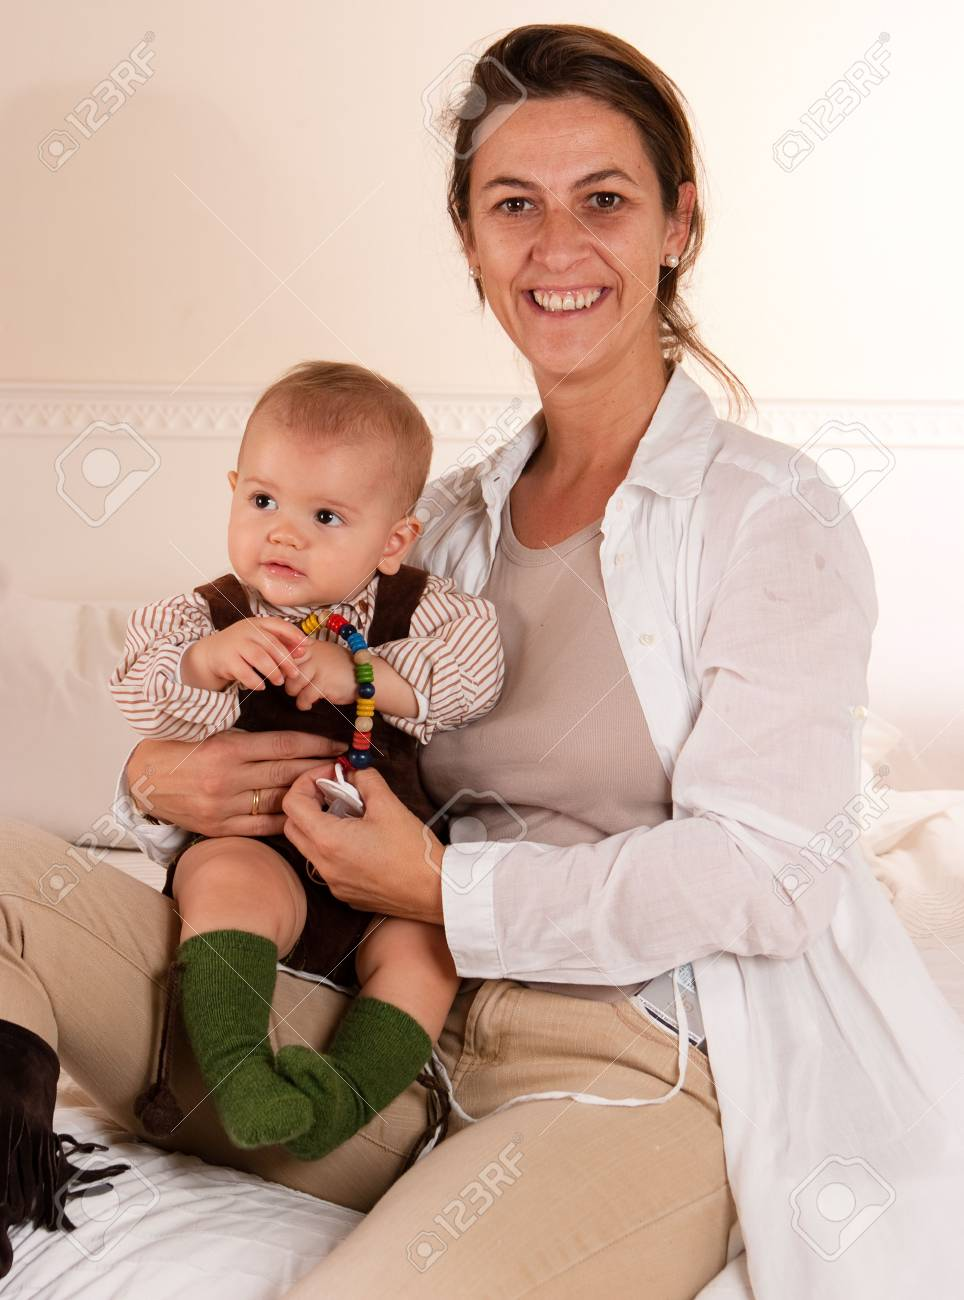 Woman sitting on a bed playing with her baby boy Stock Photo - 6332550